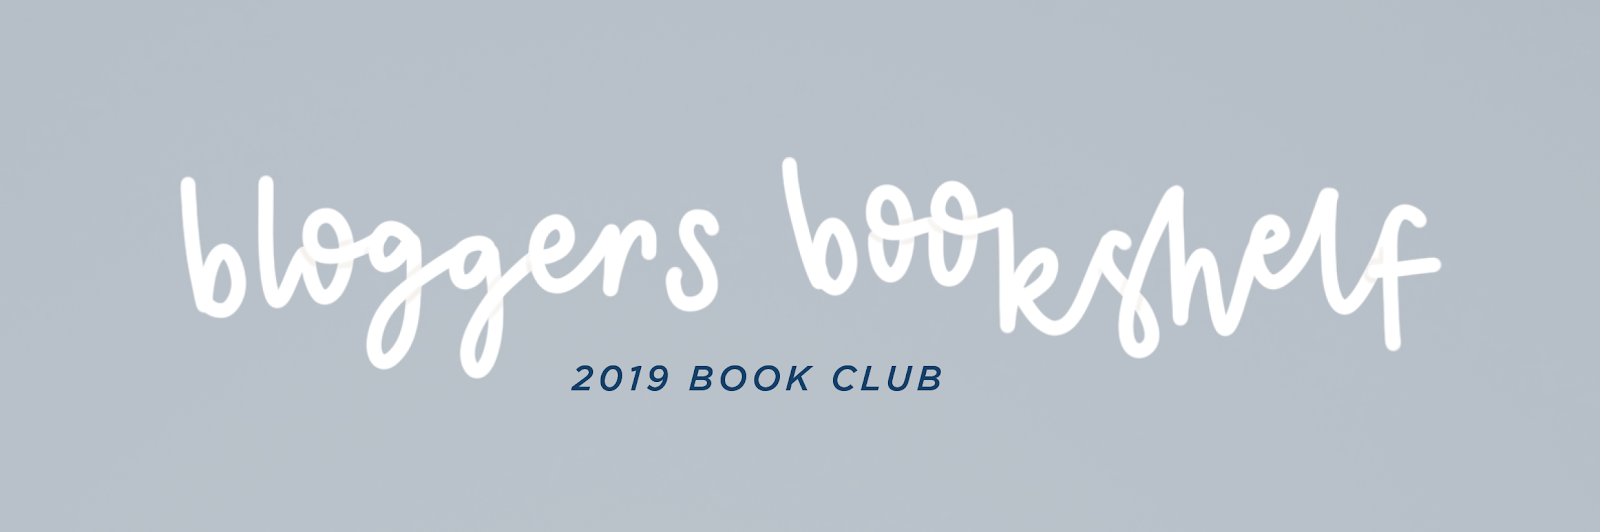 blogger's bookshelf book club 2019